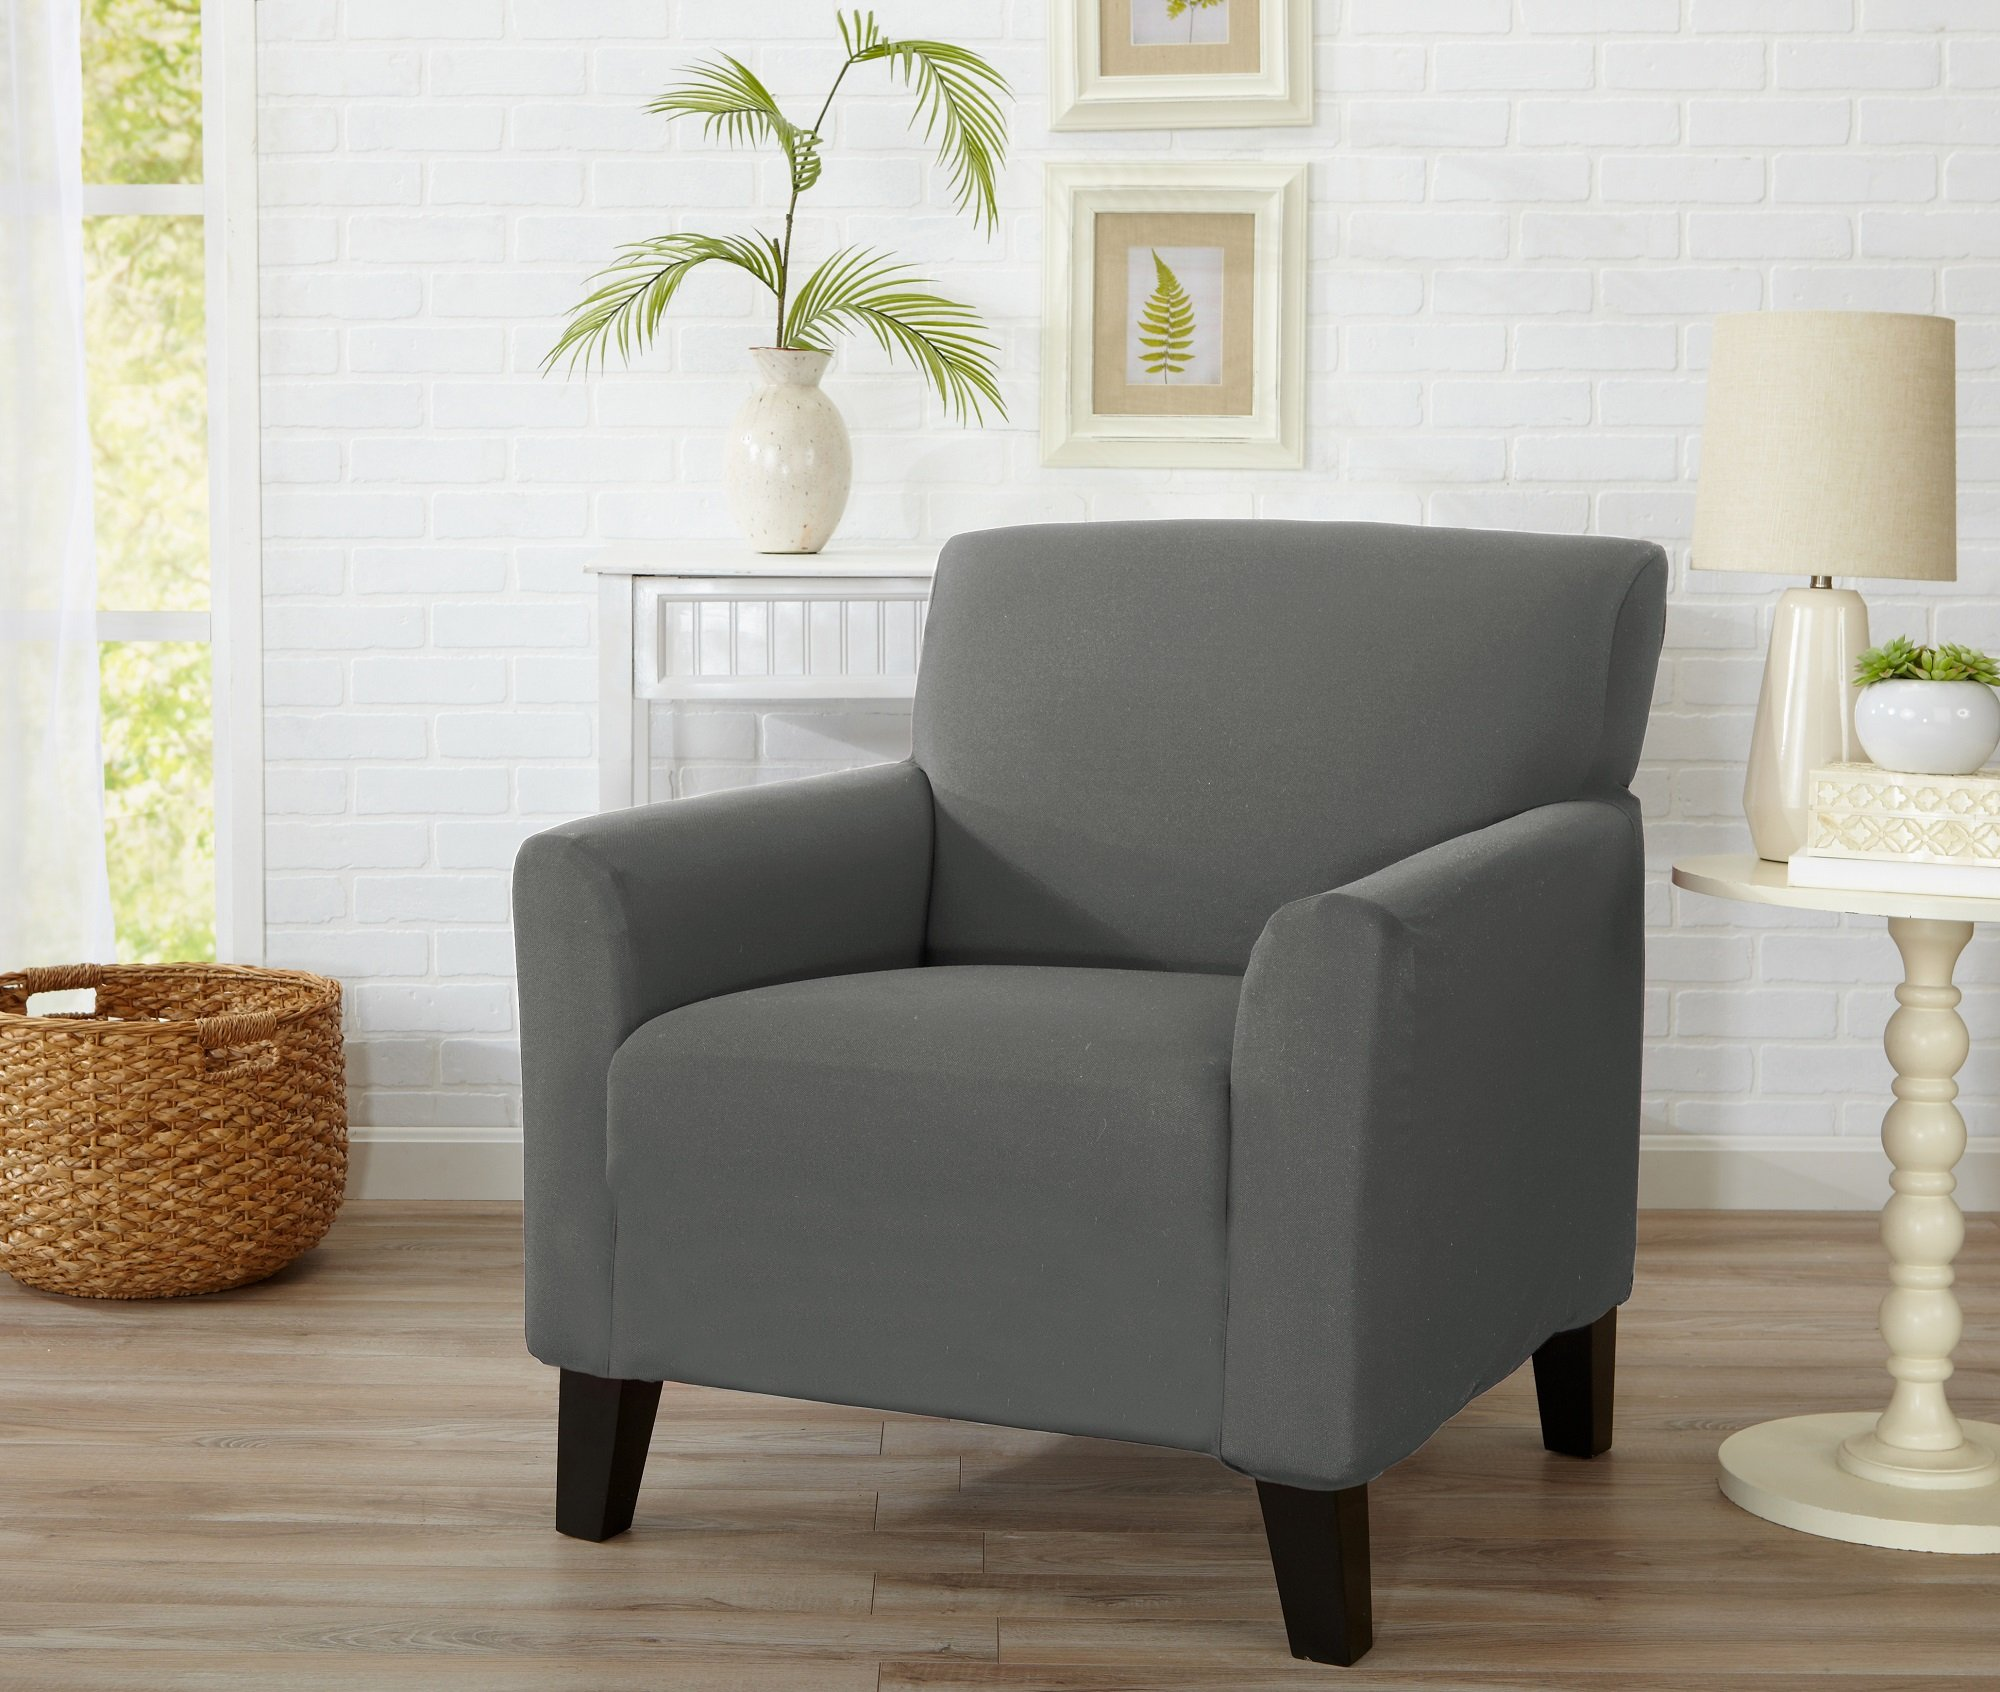 Home Fashion Designs Form Fit, Slip Resistant, Stylish Furniture Cover/Protector Featuring Lightweight Stretch Twill Fabric. Brenna Collection Strapless Slipcover. By (Chair, Charcoal - Solid)